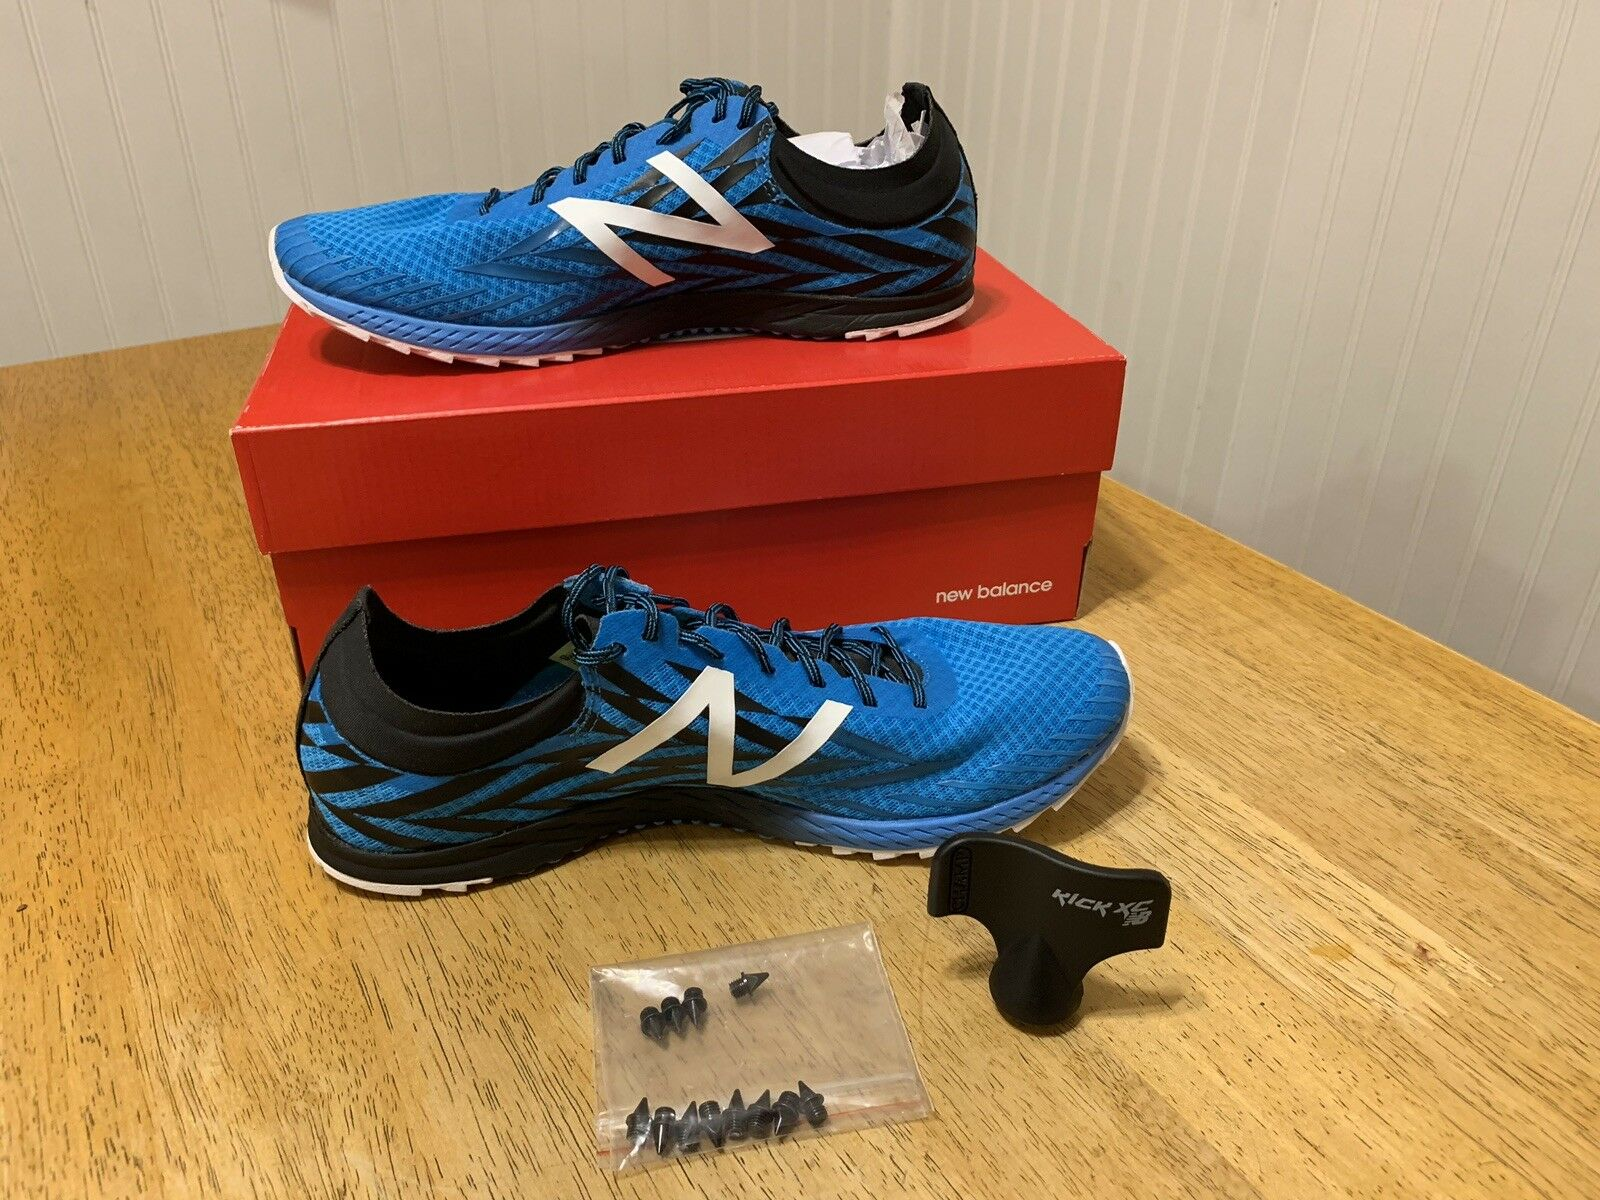 New Balance Cross Country Spikes XC 900 BRAND NEW